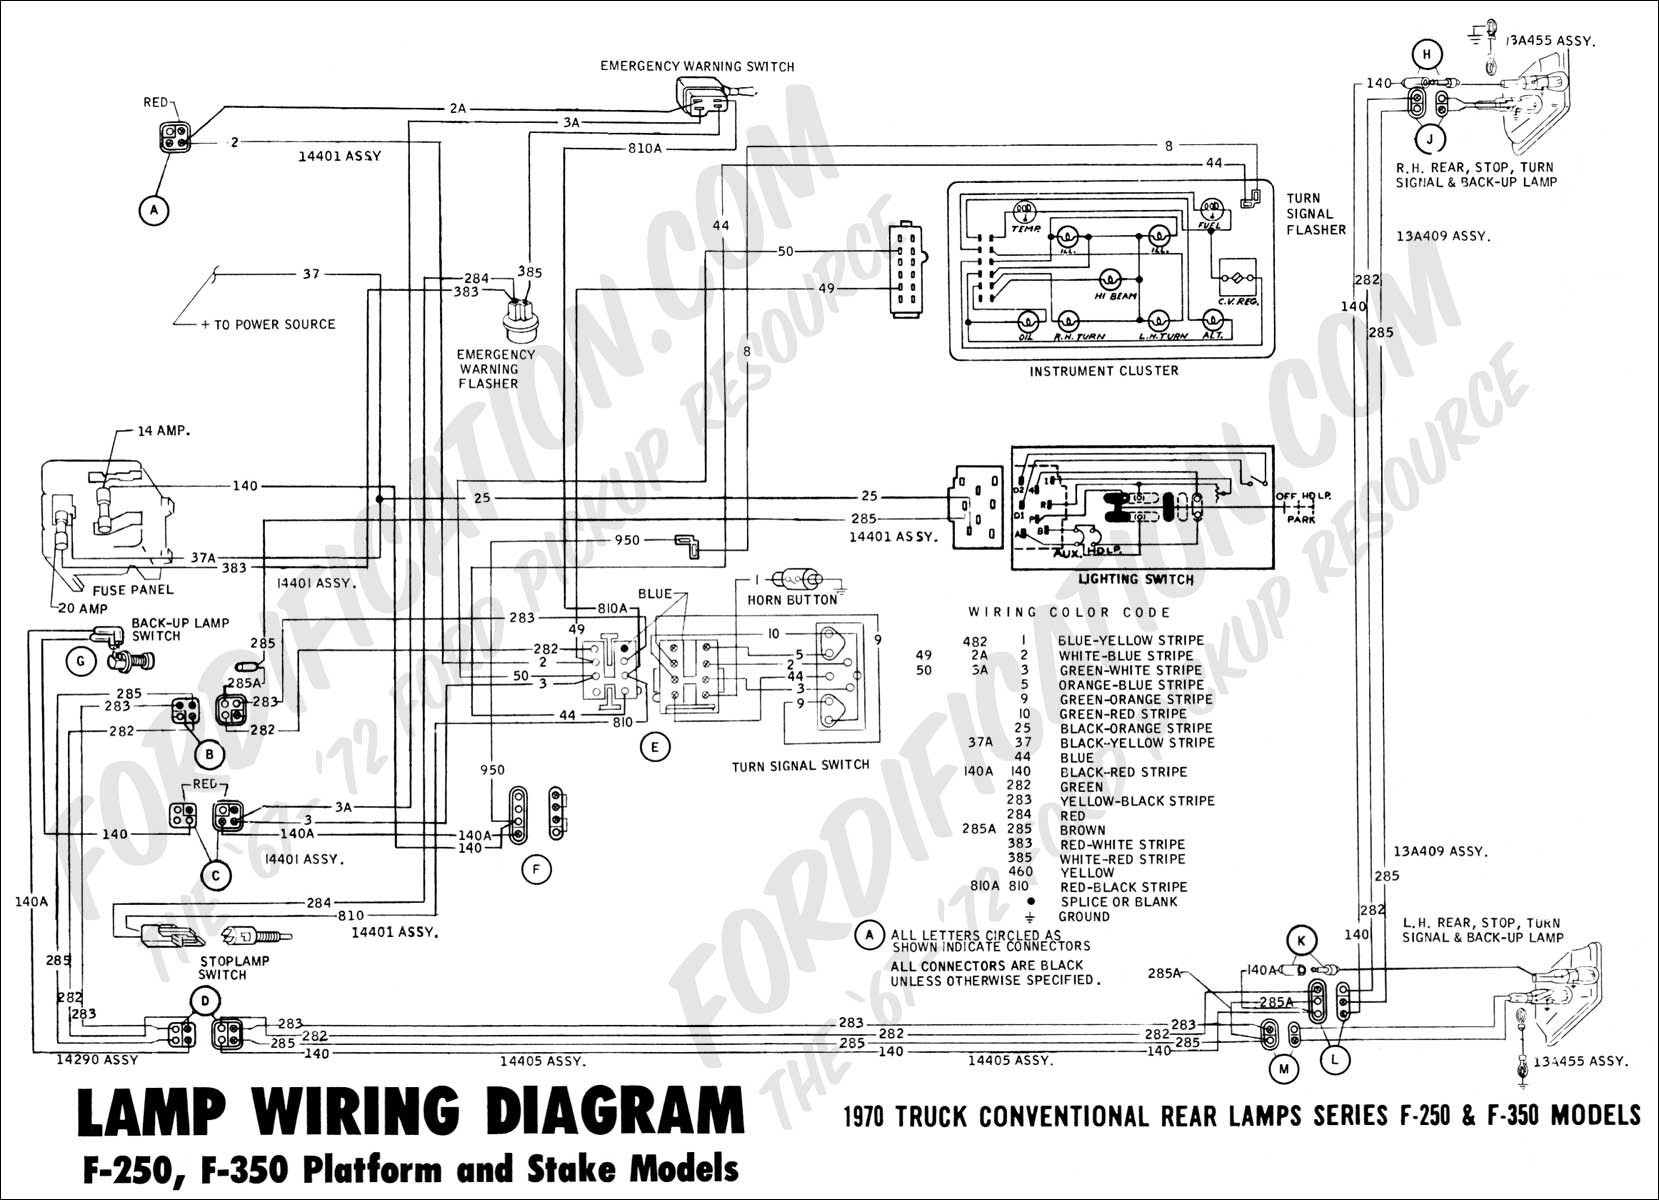 2000 f250 headlight switch wiring diagram Collection-Brake Light Switch Wiring Fresh ford Truck Tail Light Wiring Wiring Diagram 12-n